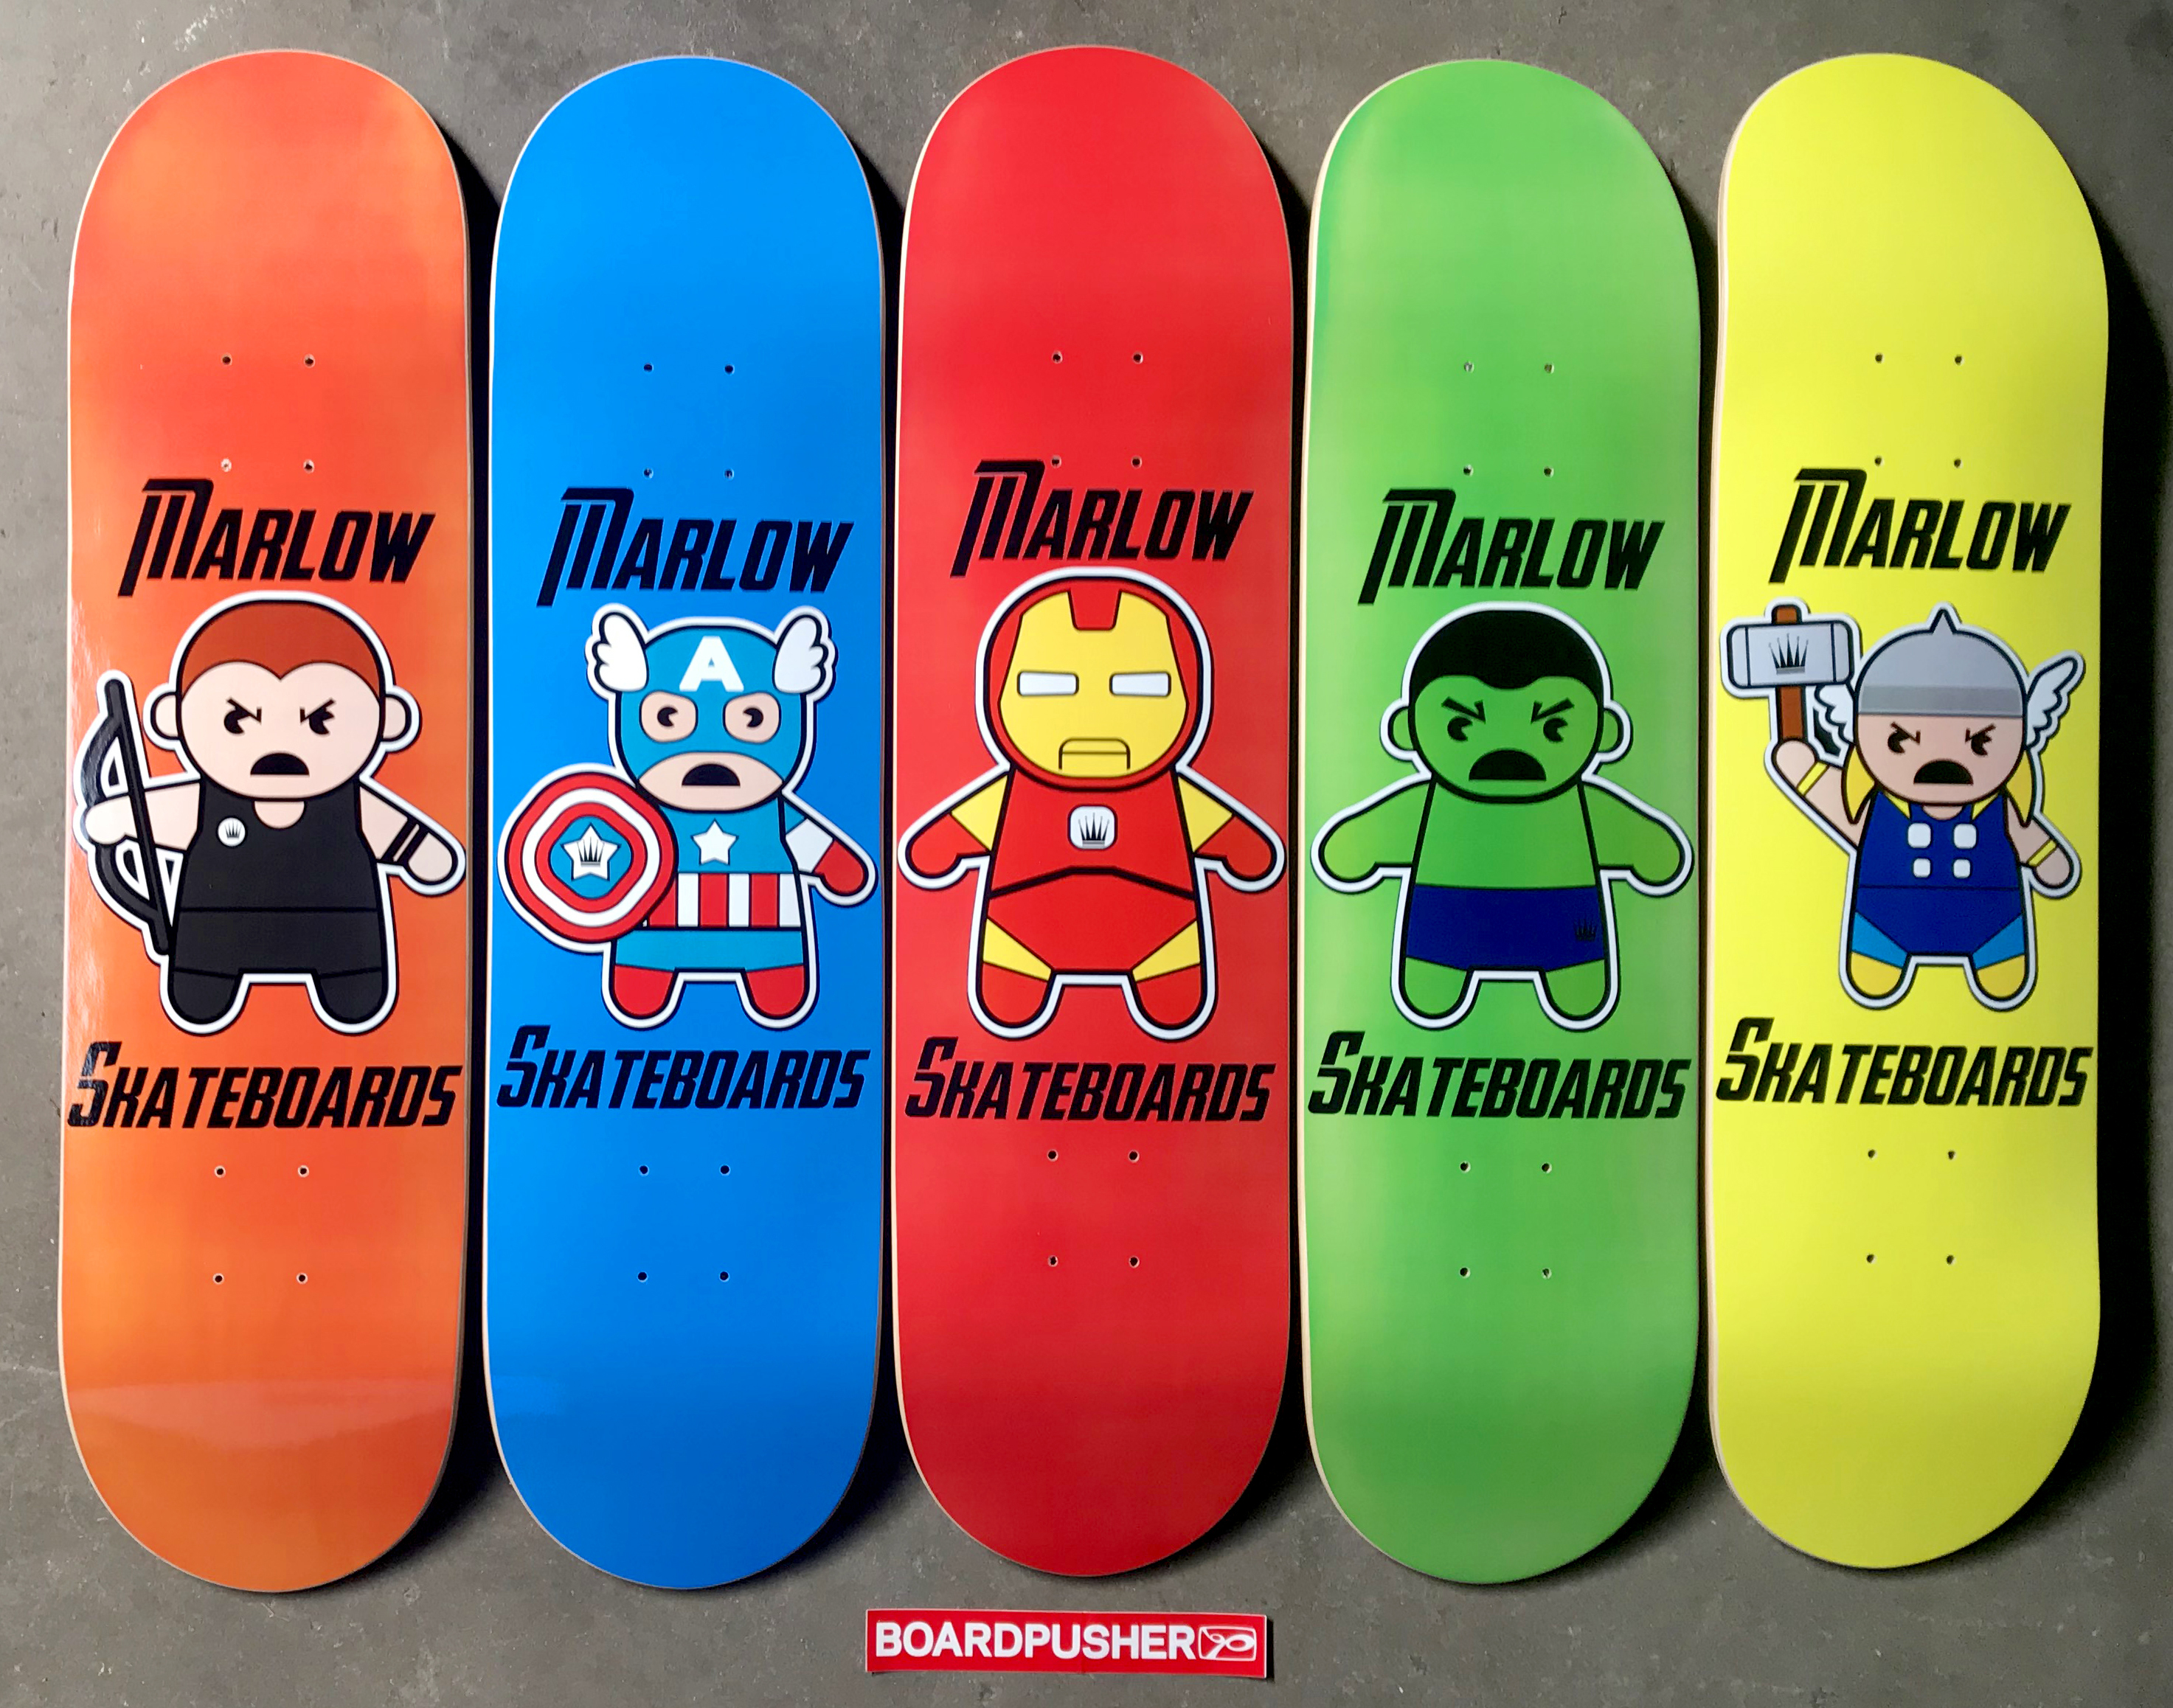 Manufacturer of Skateboards and Longboards for over 20 years